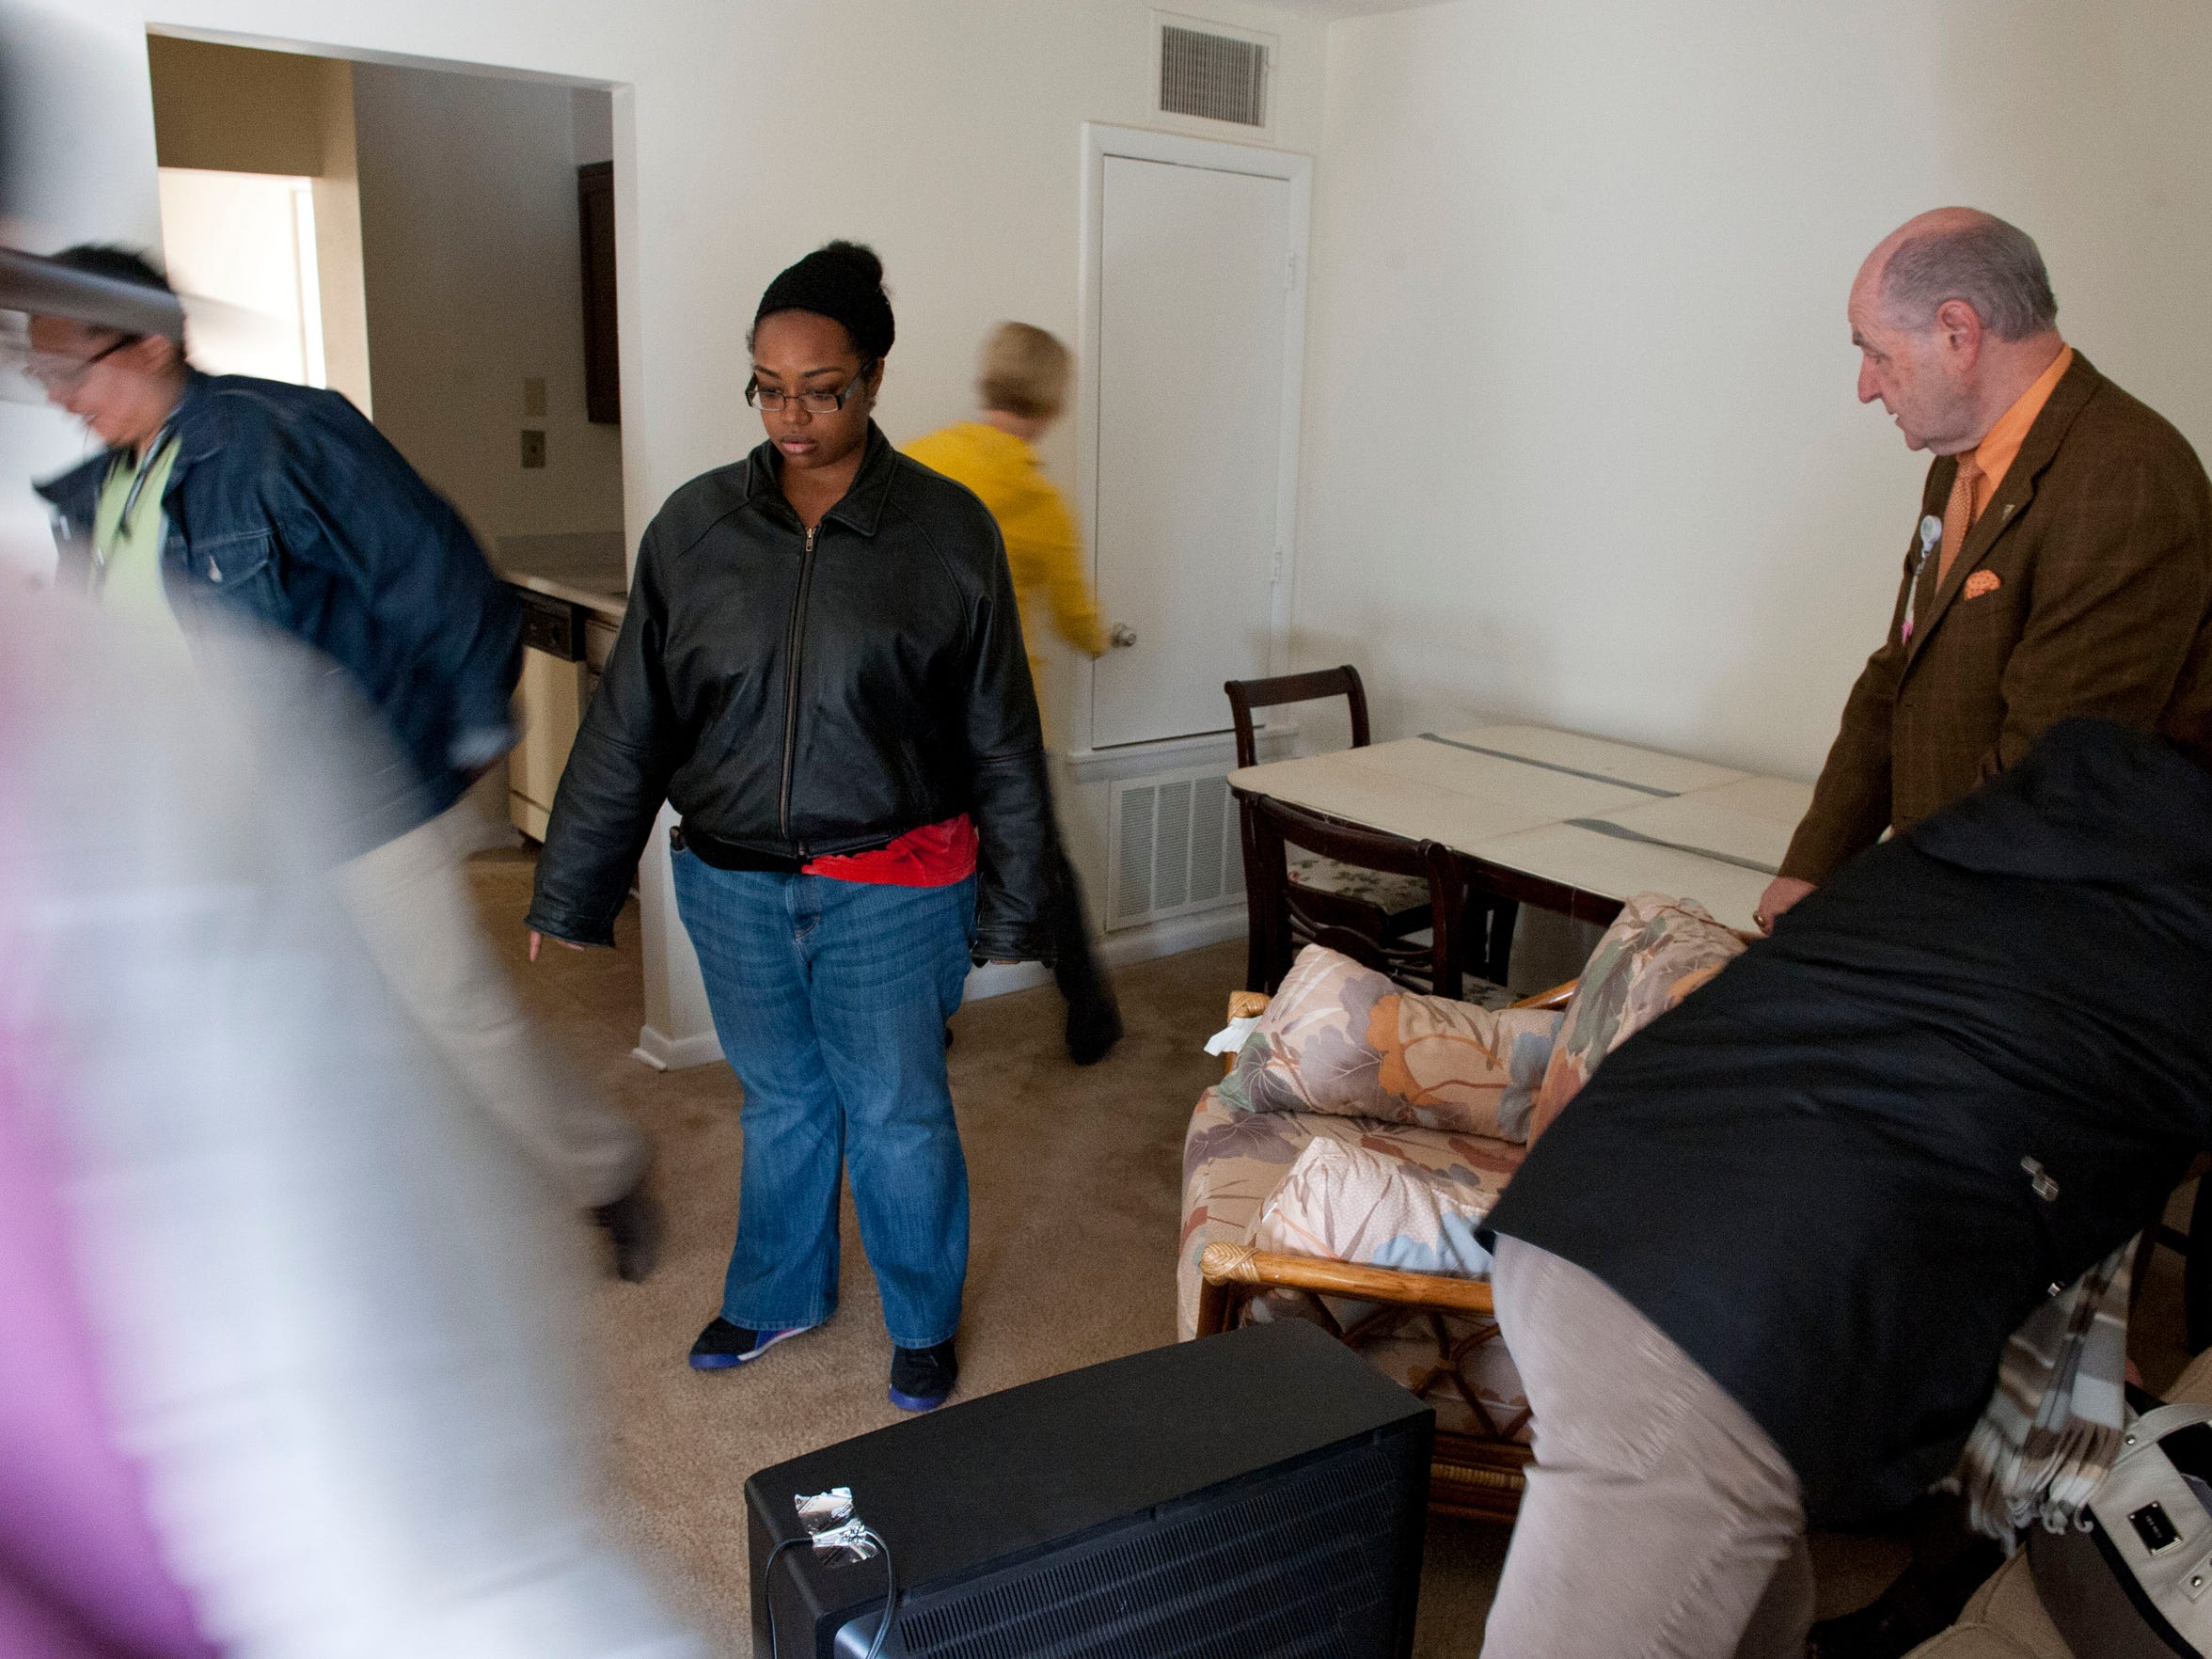 Jessica duCille watches as workers help arrange furniture in a new apartment.